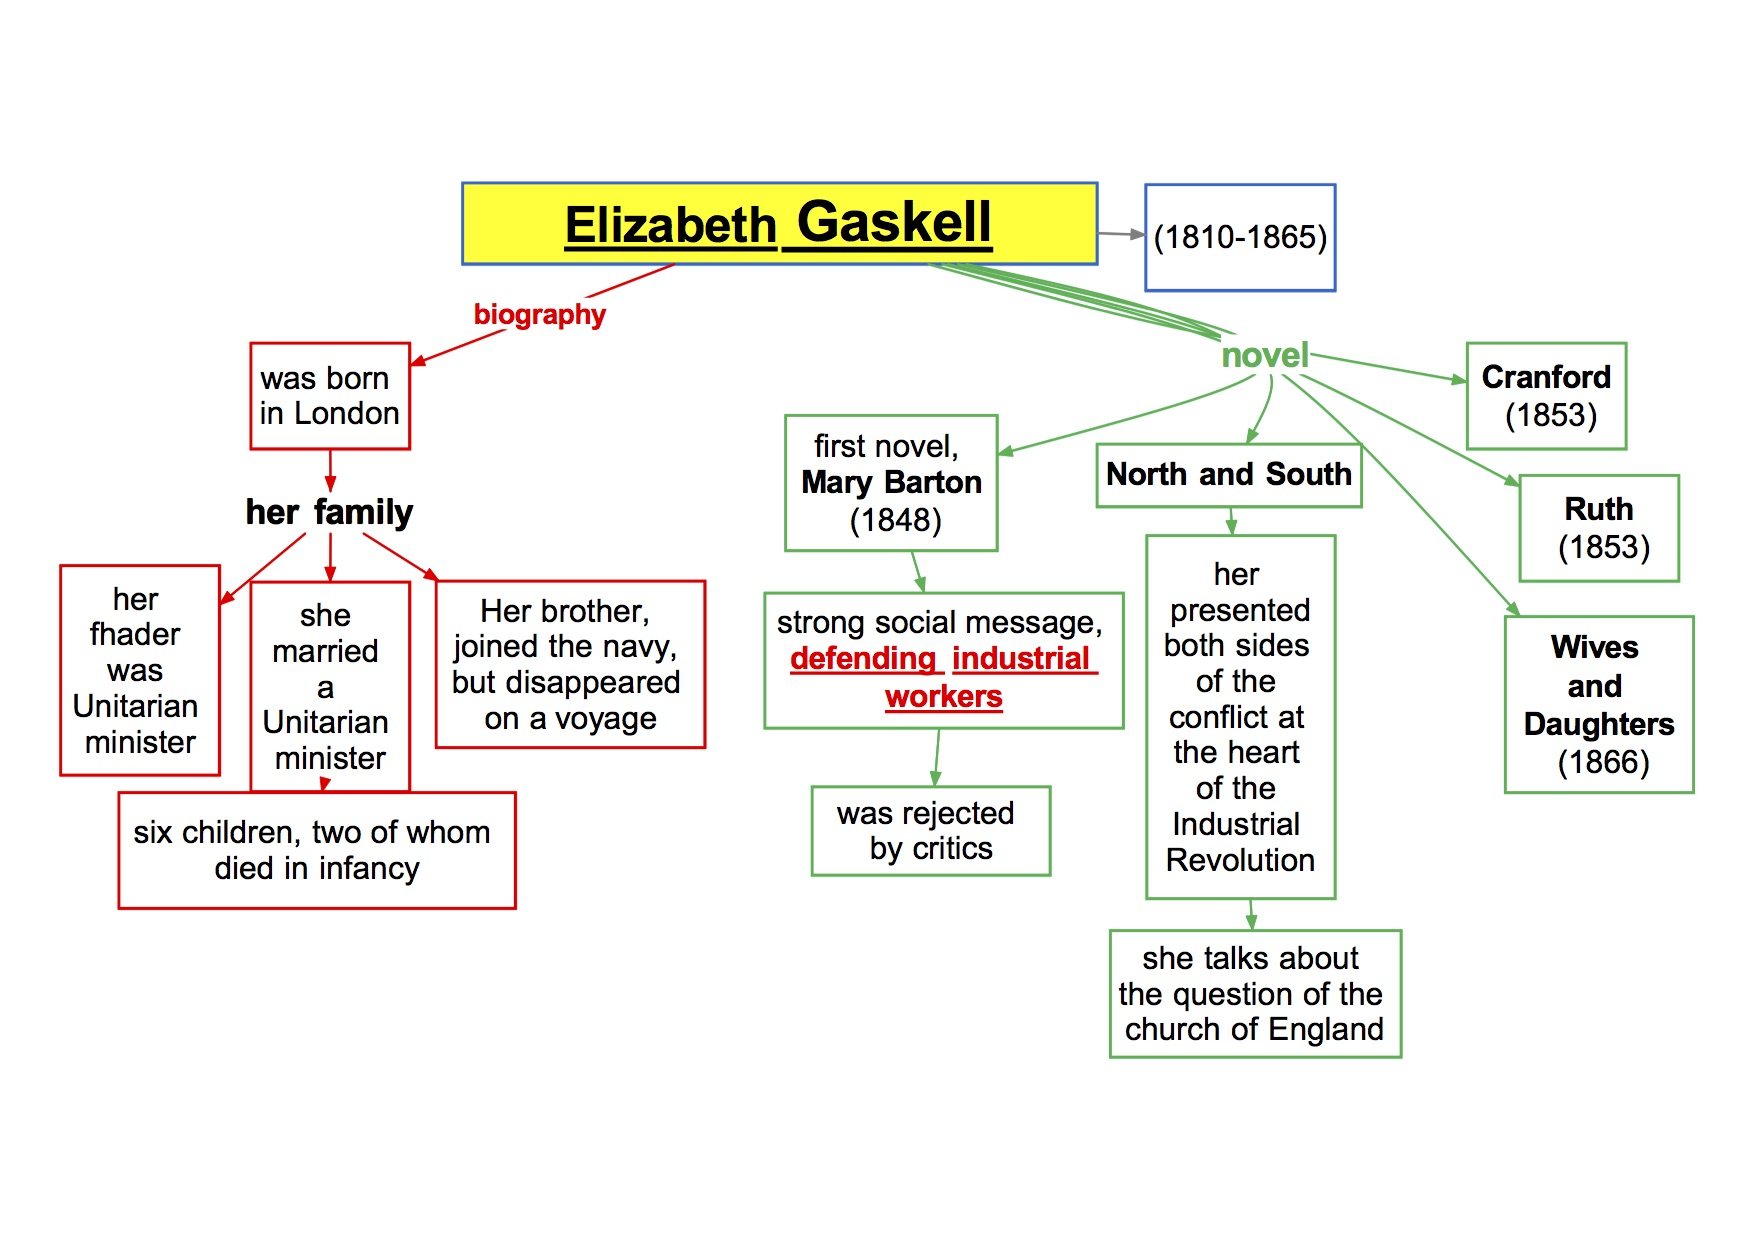 mappa concettuale visual map Inglese   Elizabeth Gaskell biography